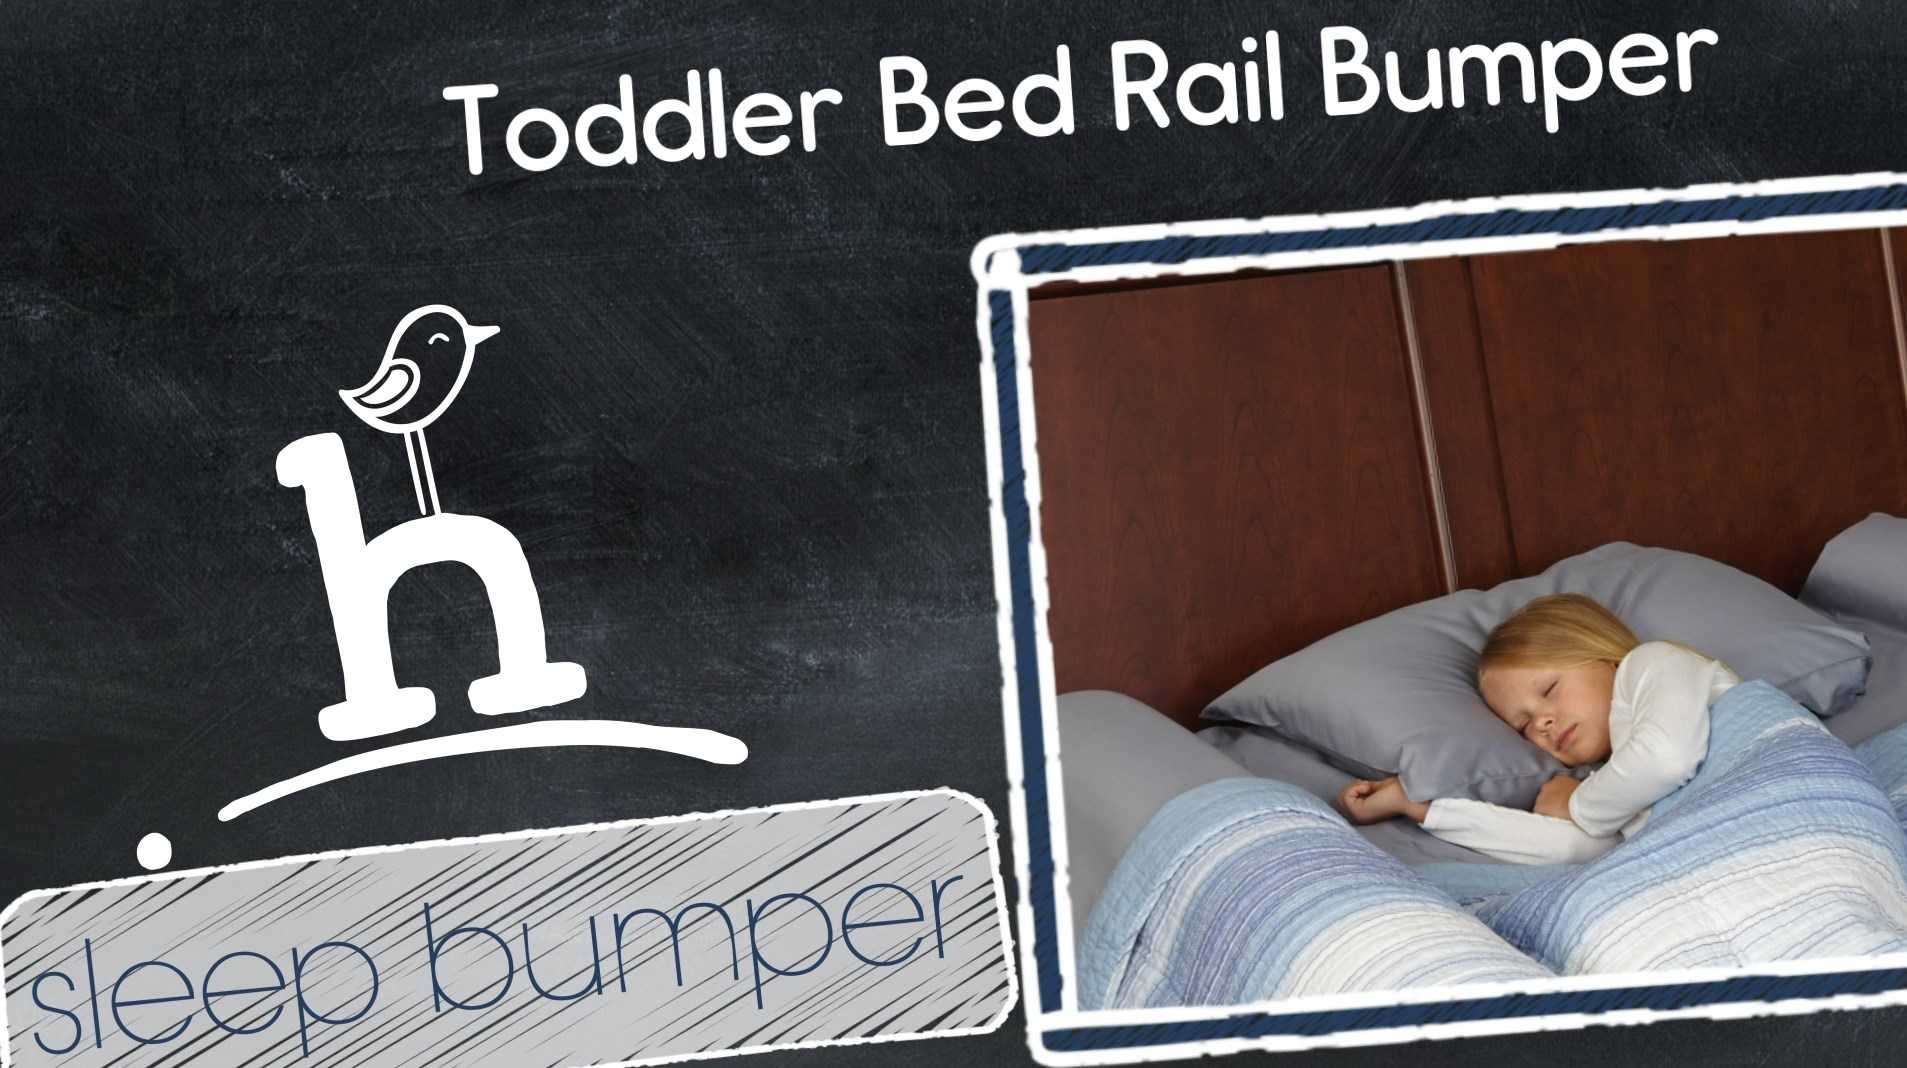 Foam Bed Bumpers, Bed Rails for Toddlers 7